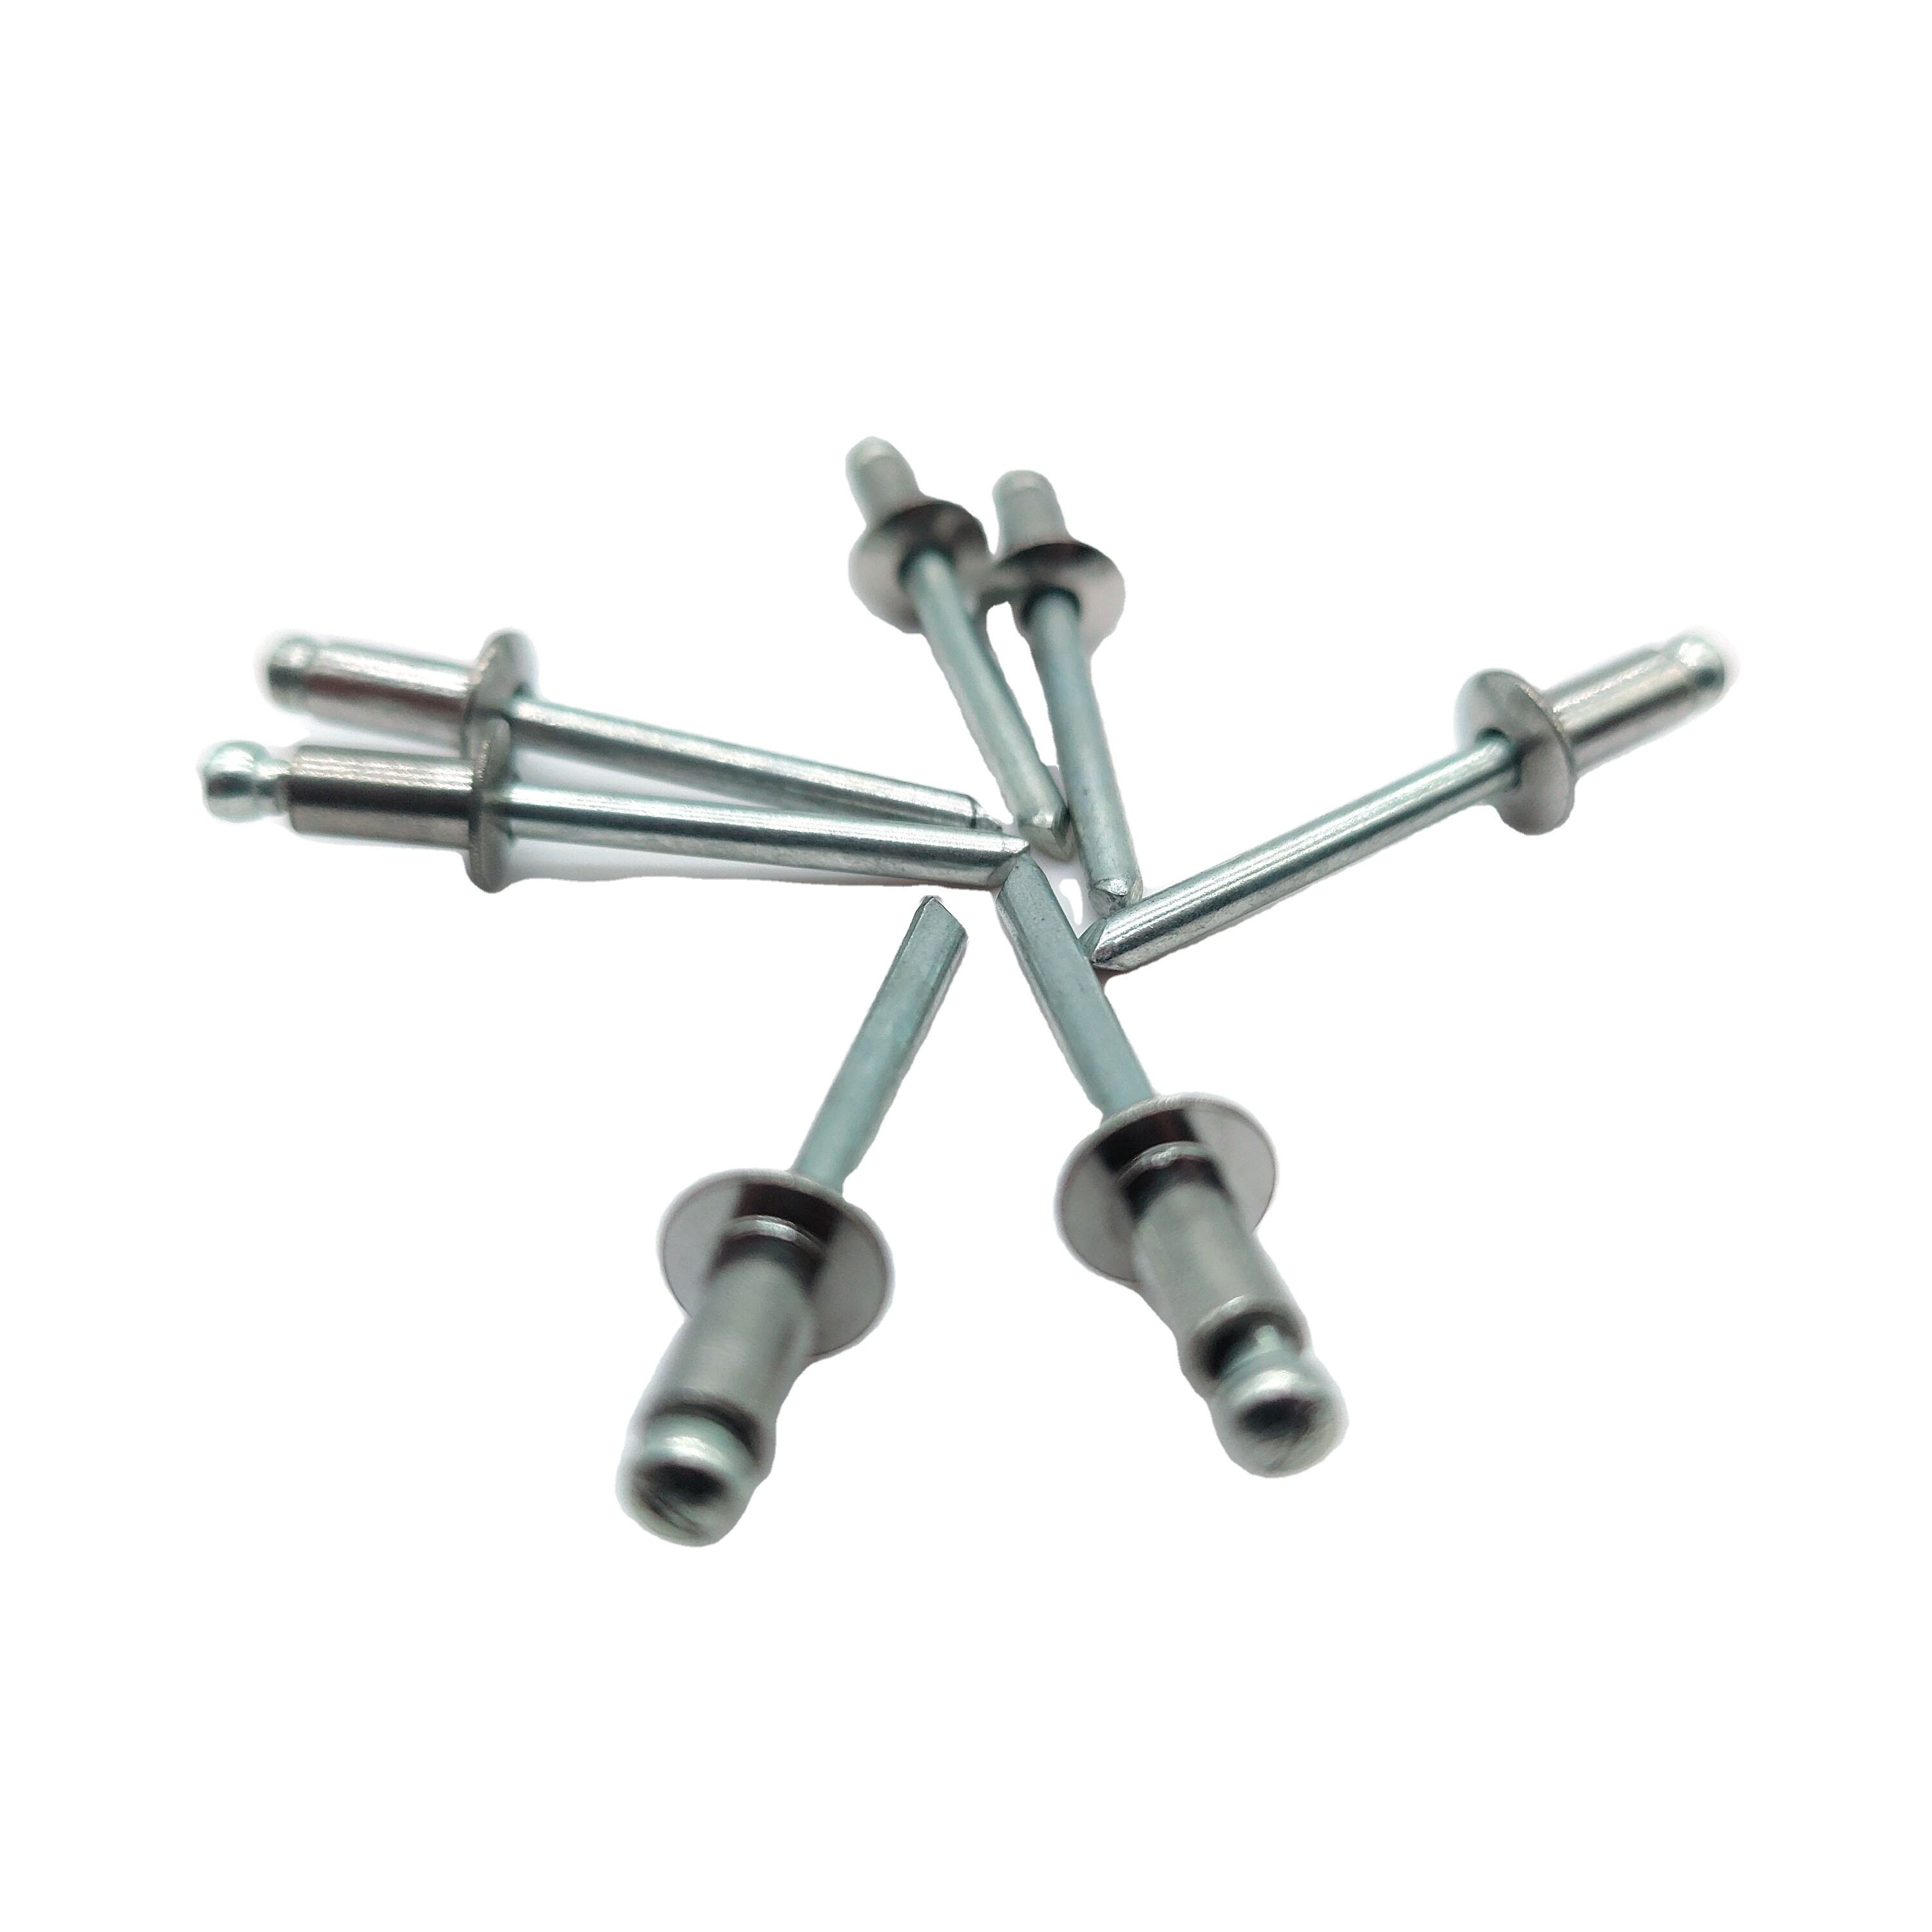 Blind Rivet Stainless Steel Self-Plugging Open End Fastener Nails Pop Rivets Core Pulling Rivets Factory Customized Round head